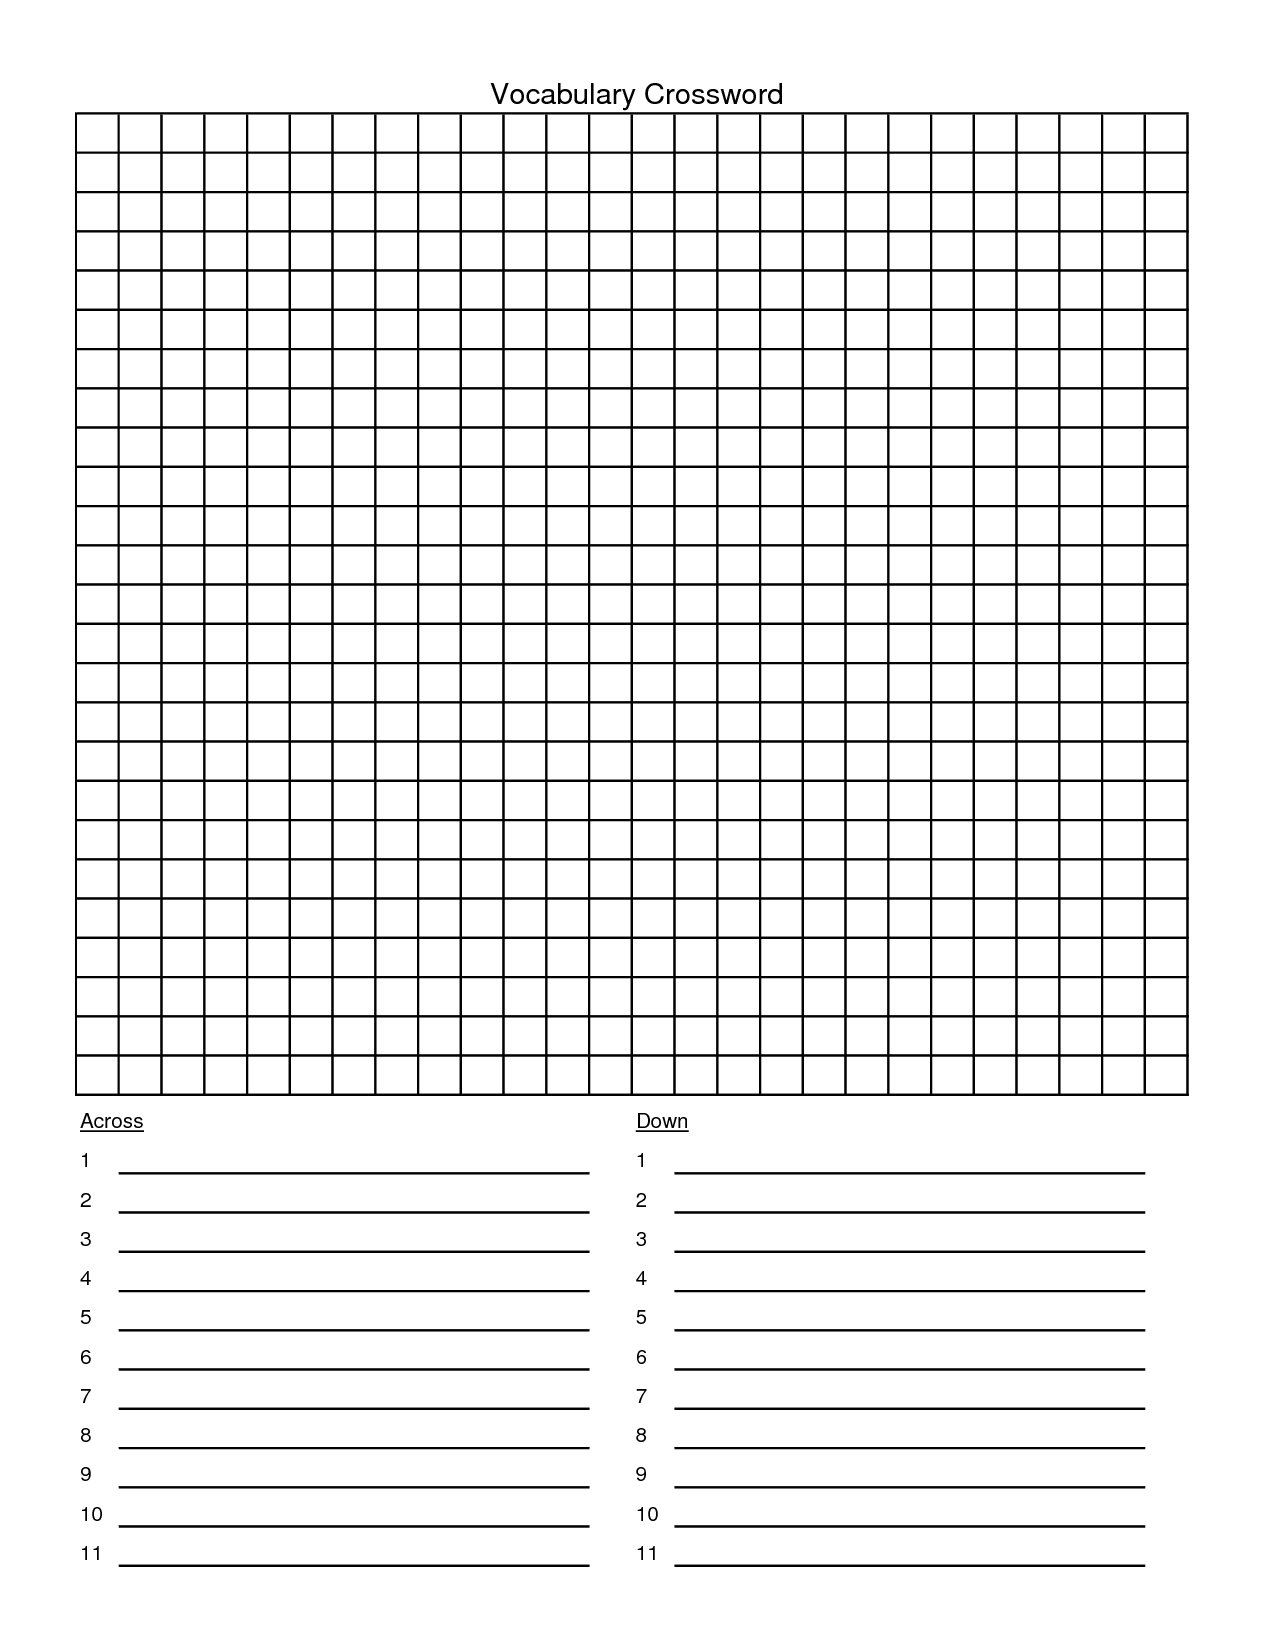 Crossword Puzzle Template - Yapis.sticken.co - Printable Crossword Template